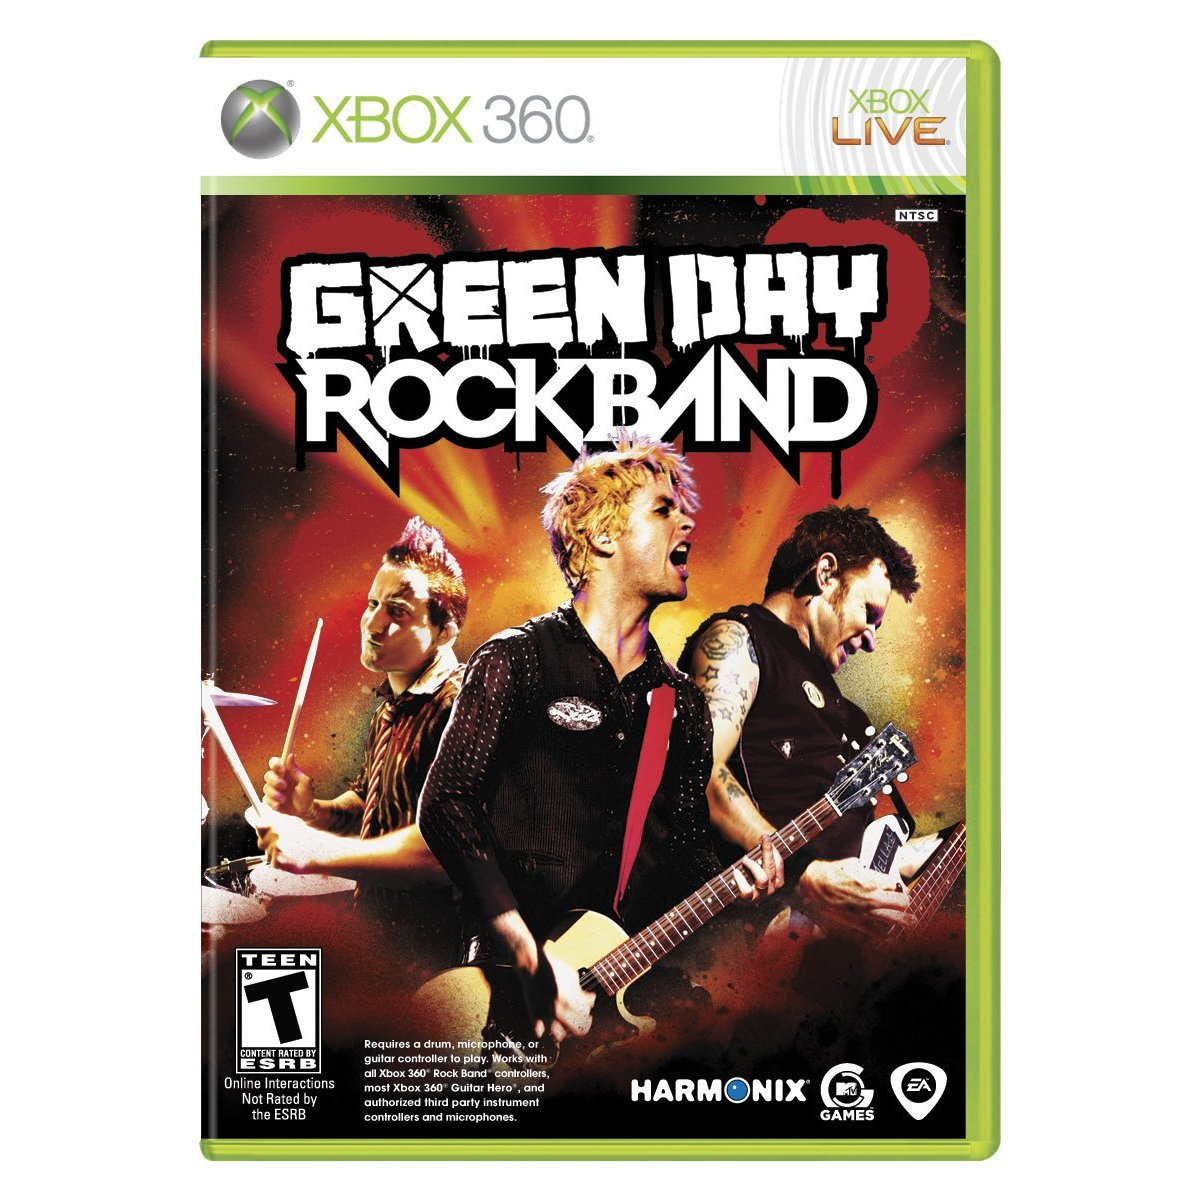 Green day rock band for xbox by mtv games ea harmonix